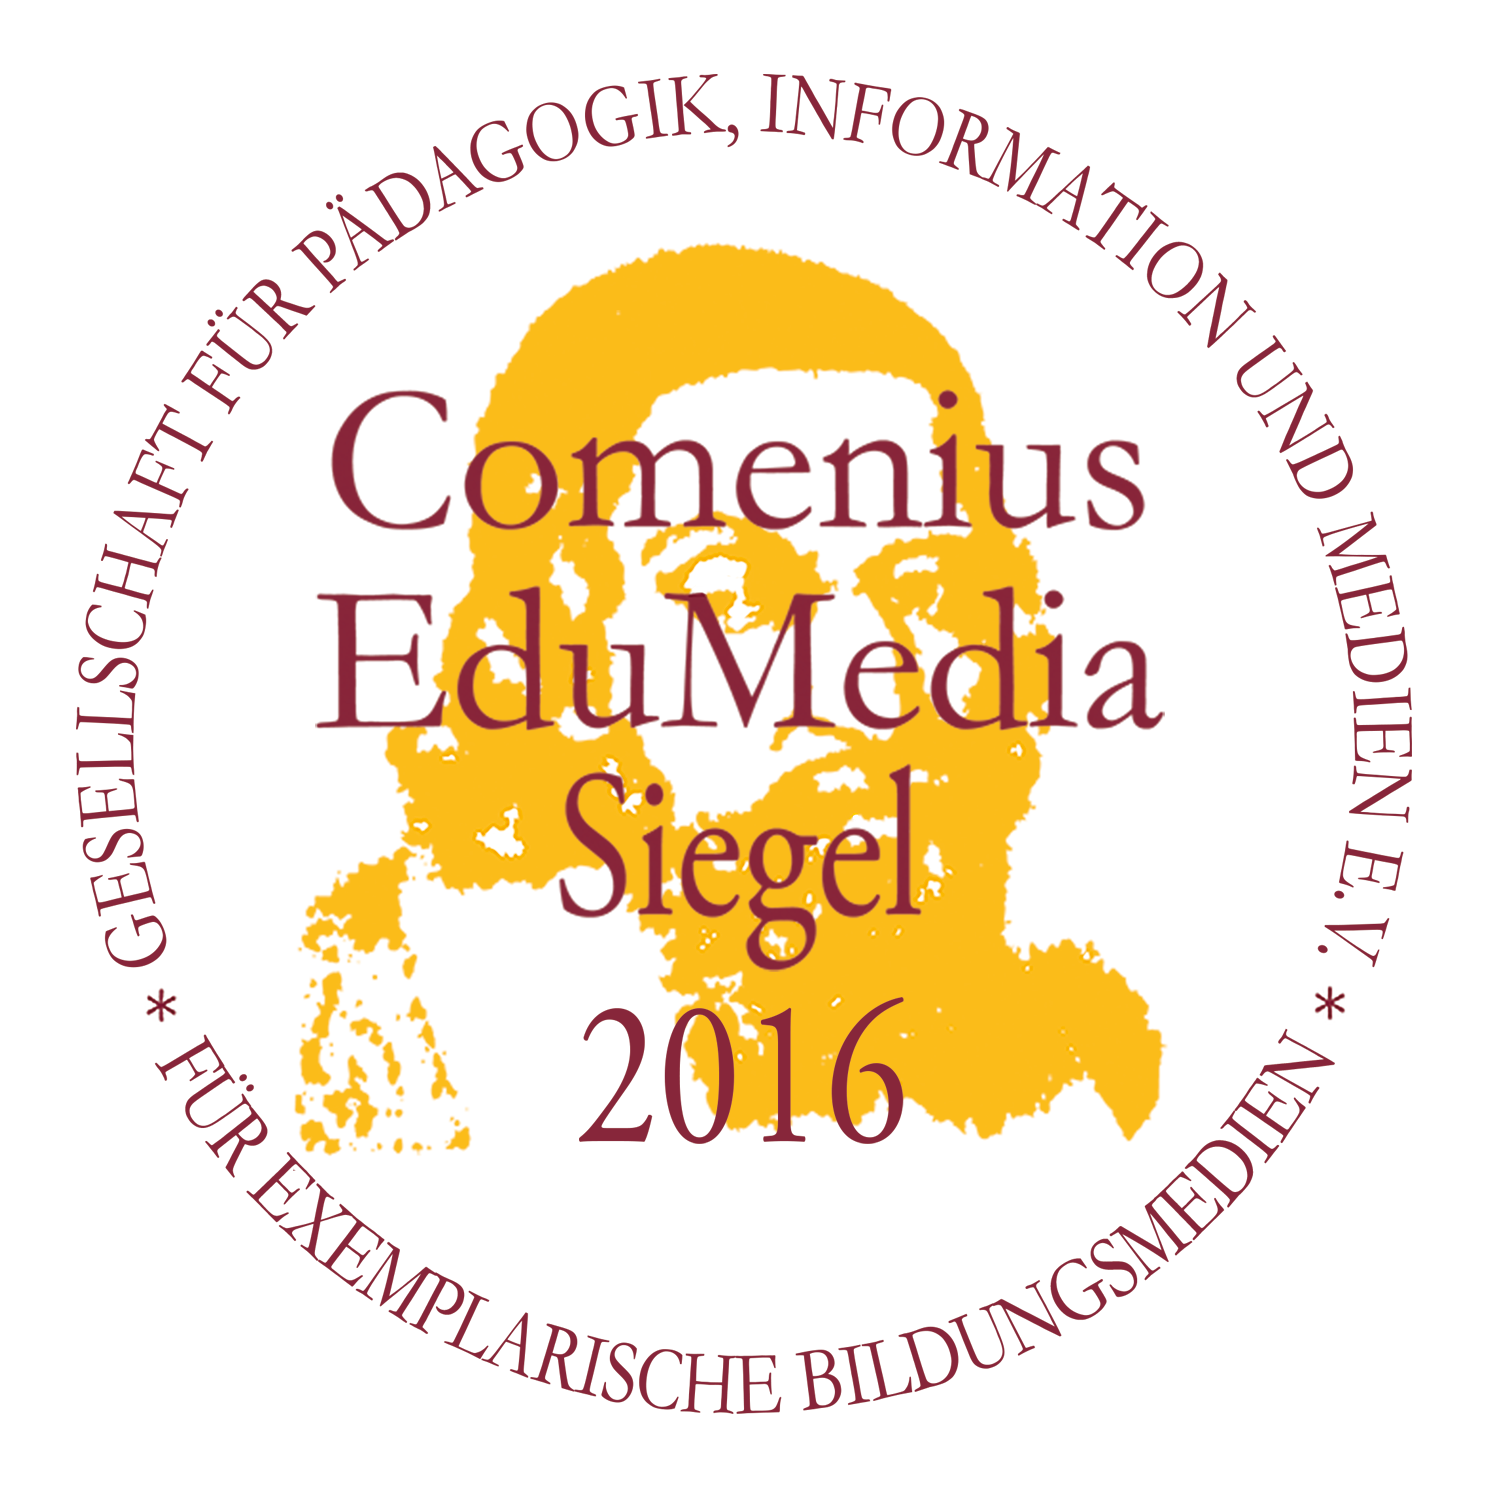 ComeniusEduMed_Siegel_2016_WEB